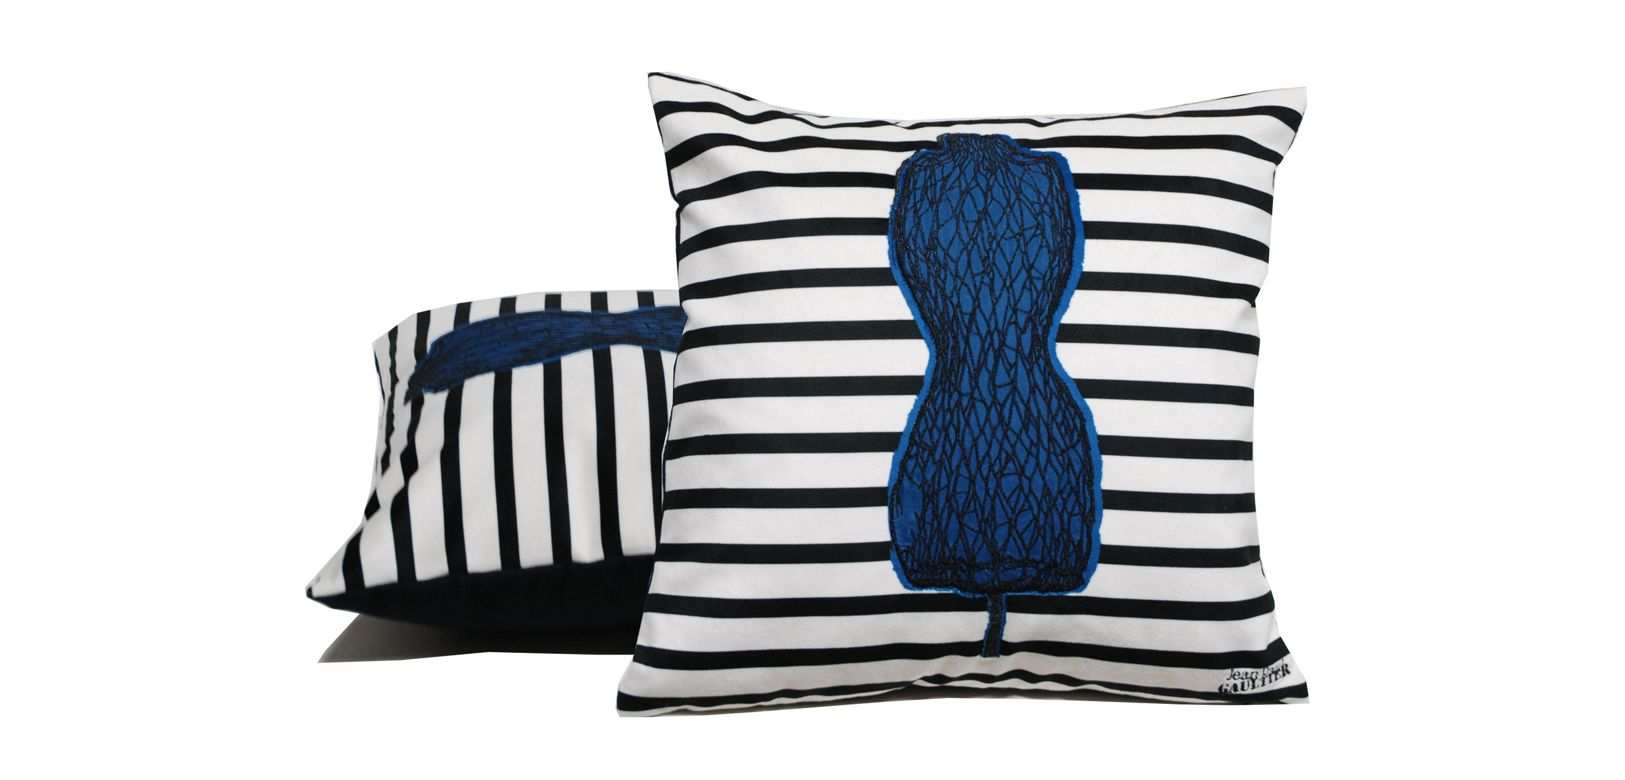 femina jean paul gaultier cushion roche bobois. Black Bedroom Furniture Sets. Home Design Ideas